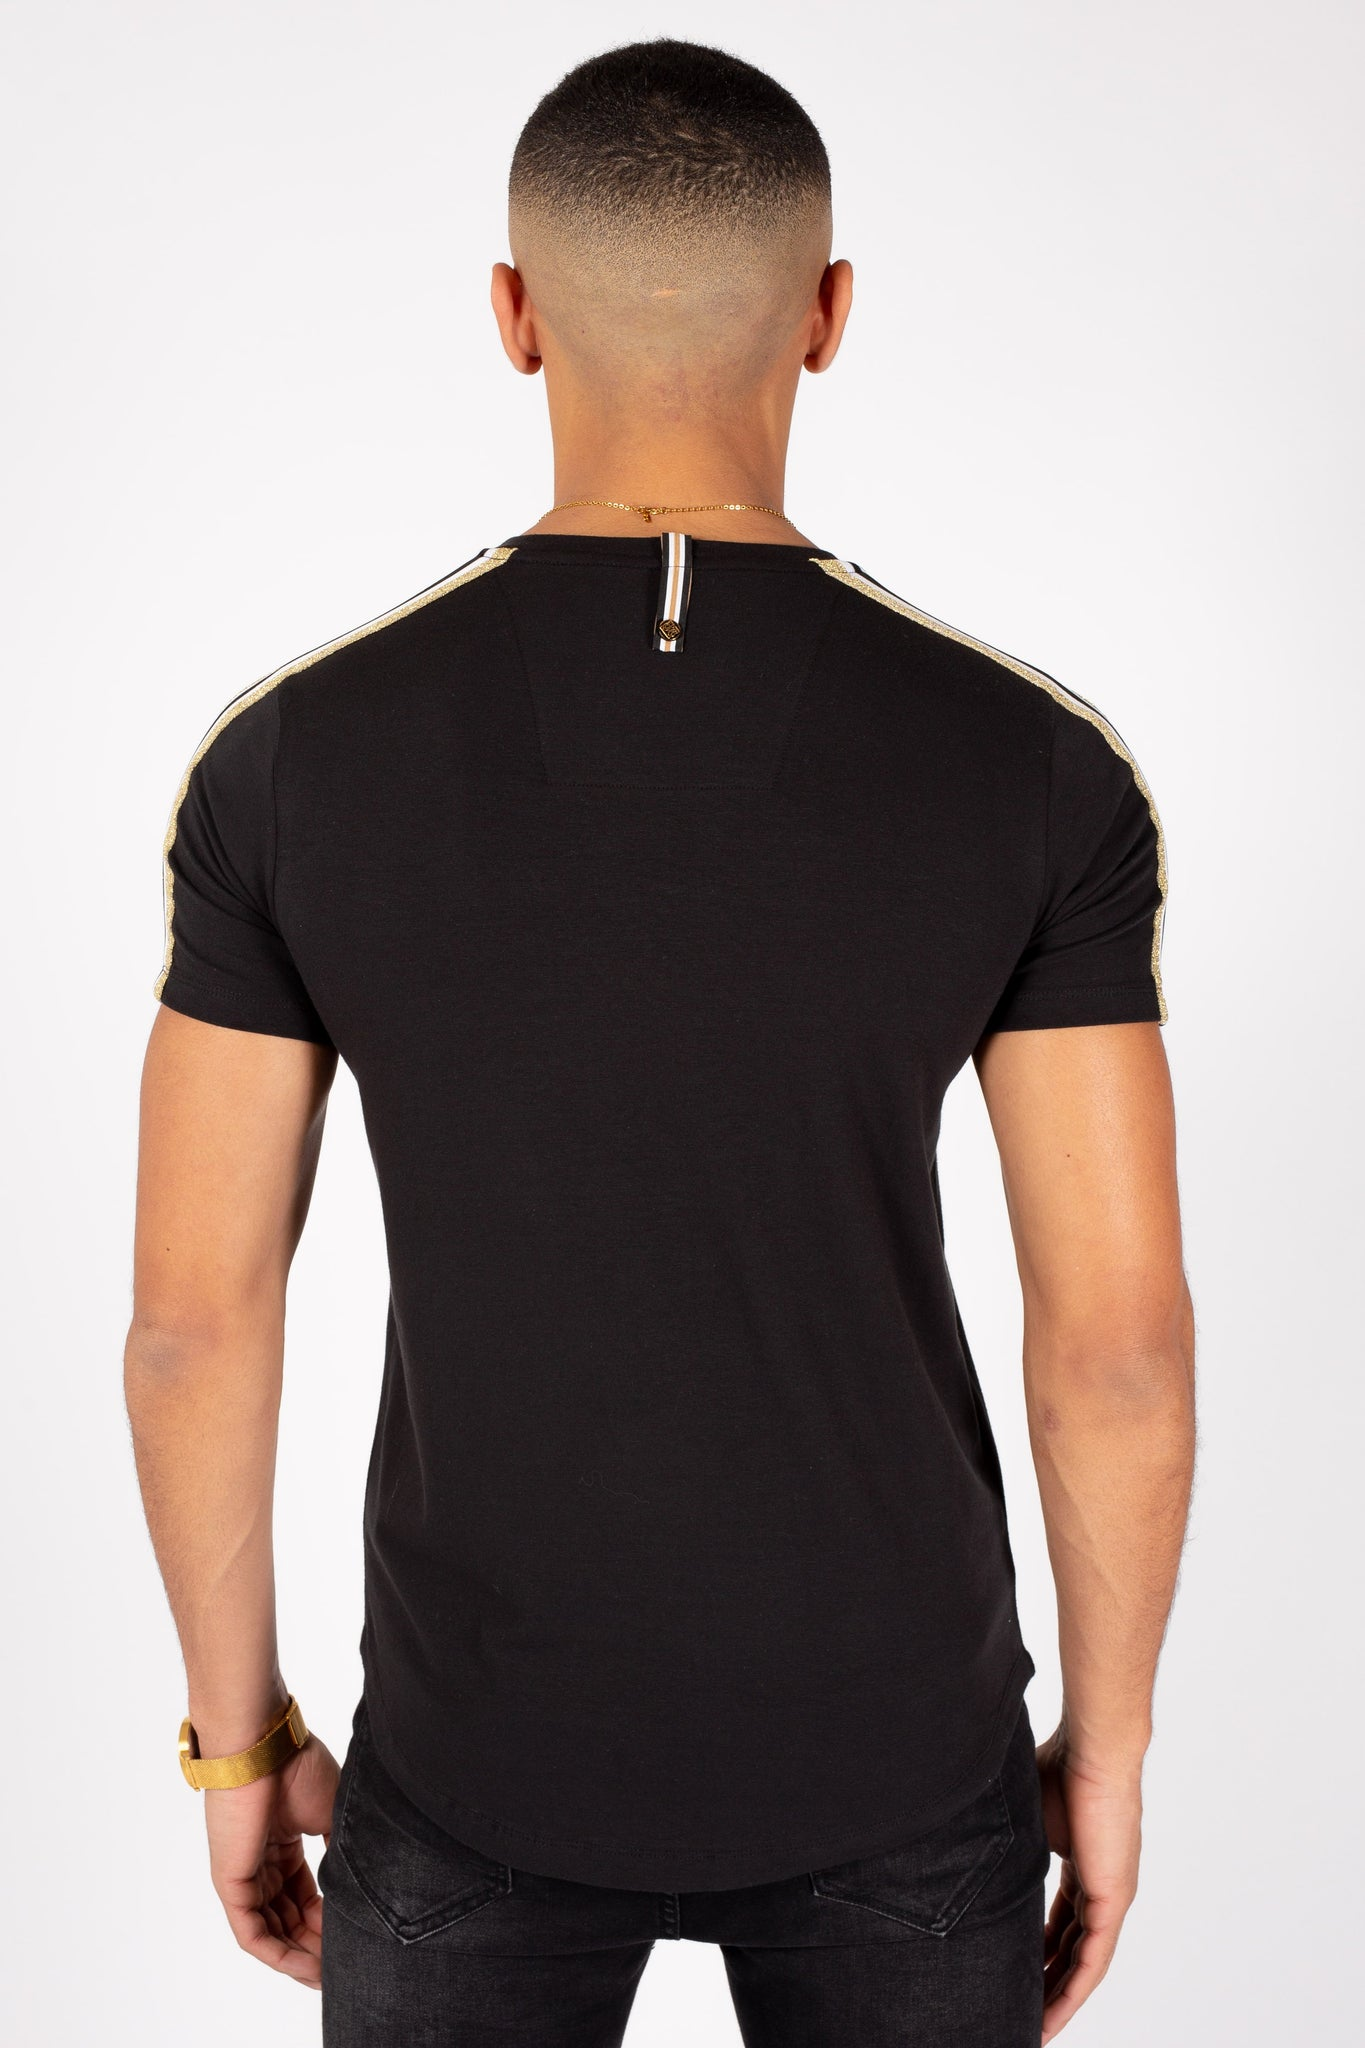 Men's Signature T-Shirt in Black